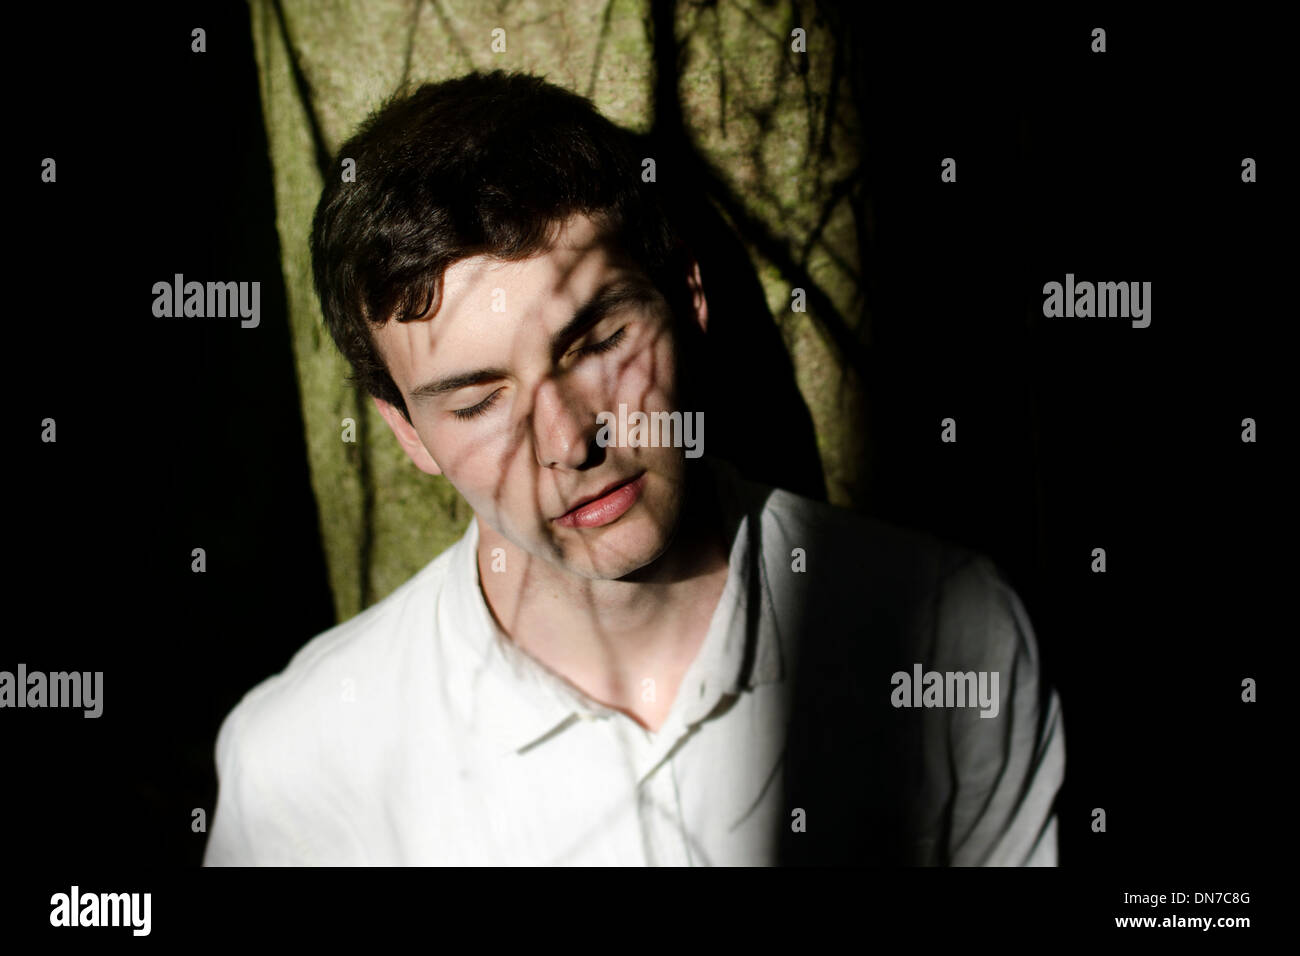 Young man with shadow of tree branches in the face Stock Photo